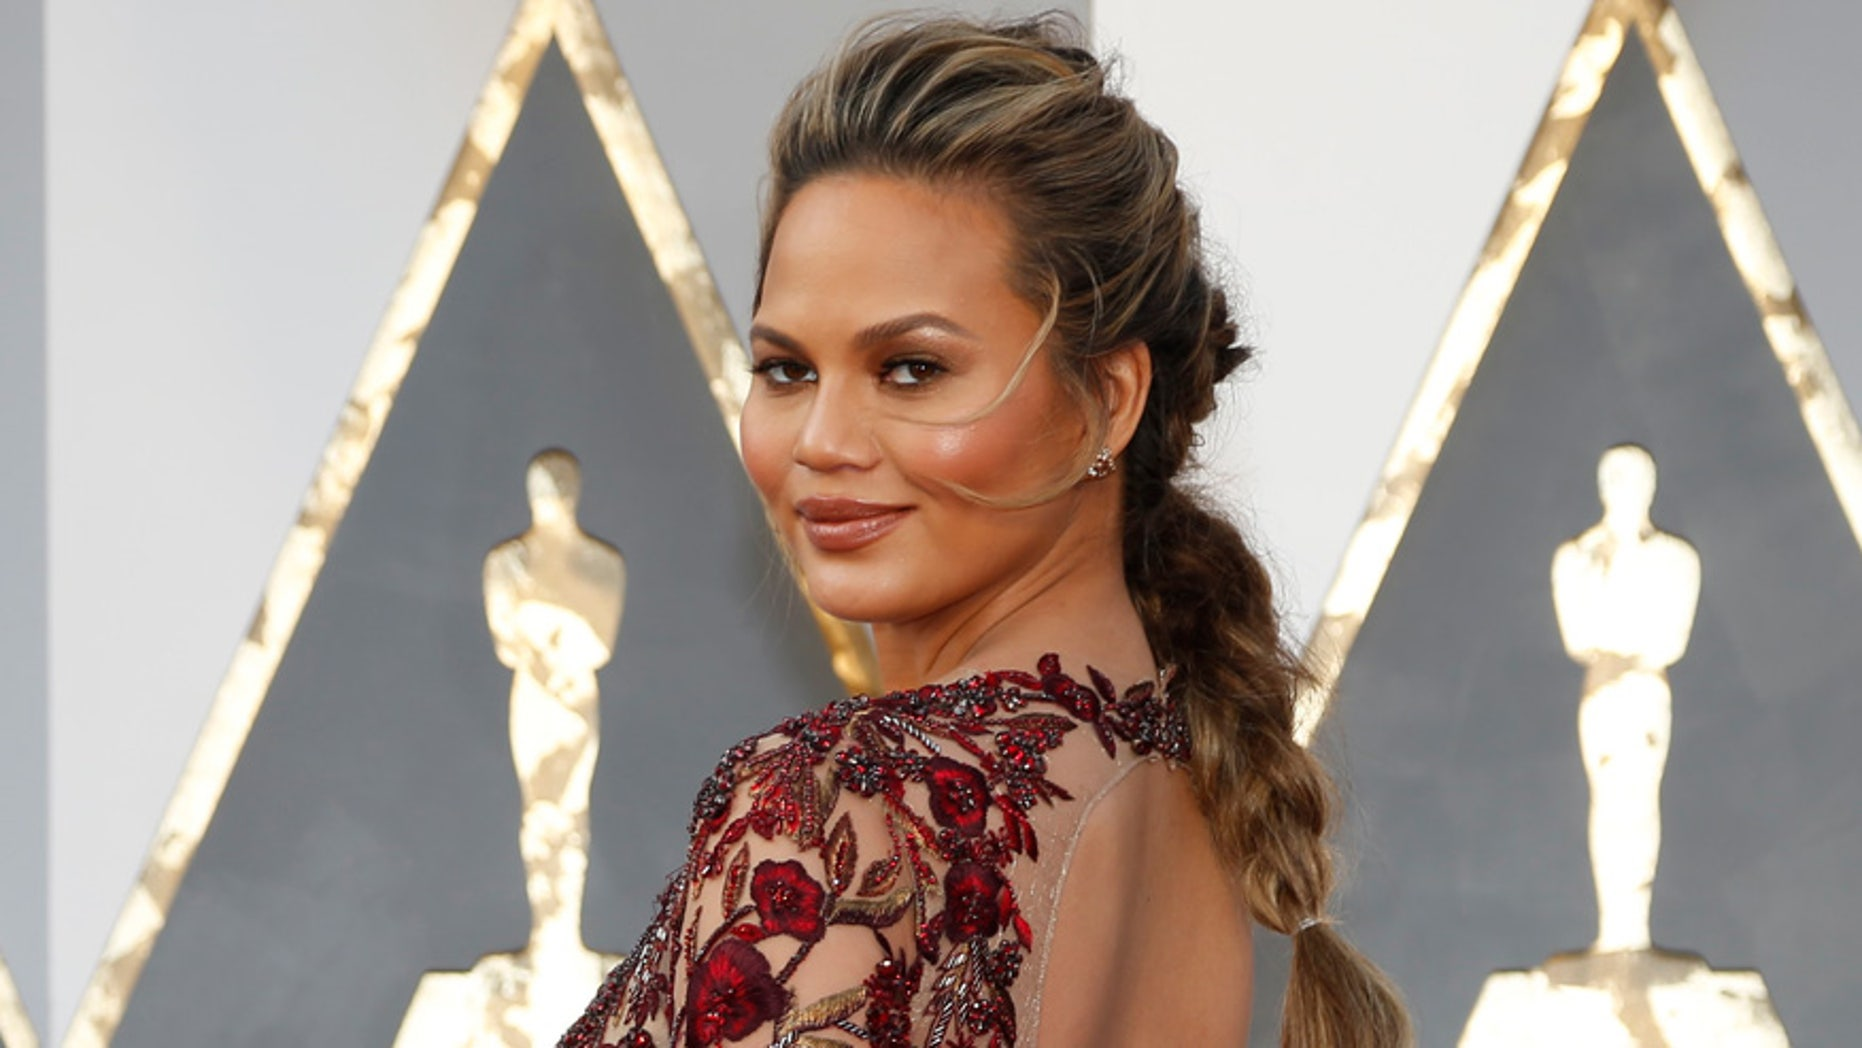 Chrissy Teigen got a nice surprise from Outback Steakhouse earlier this week.